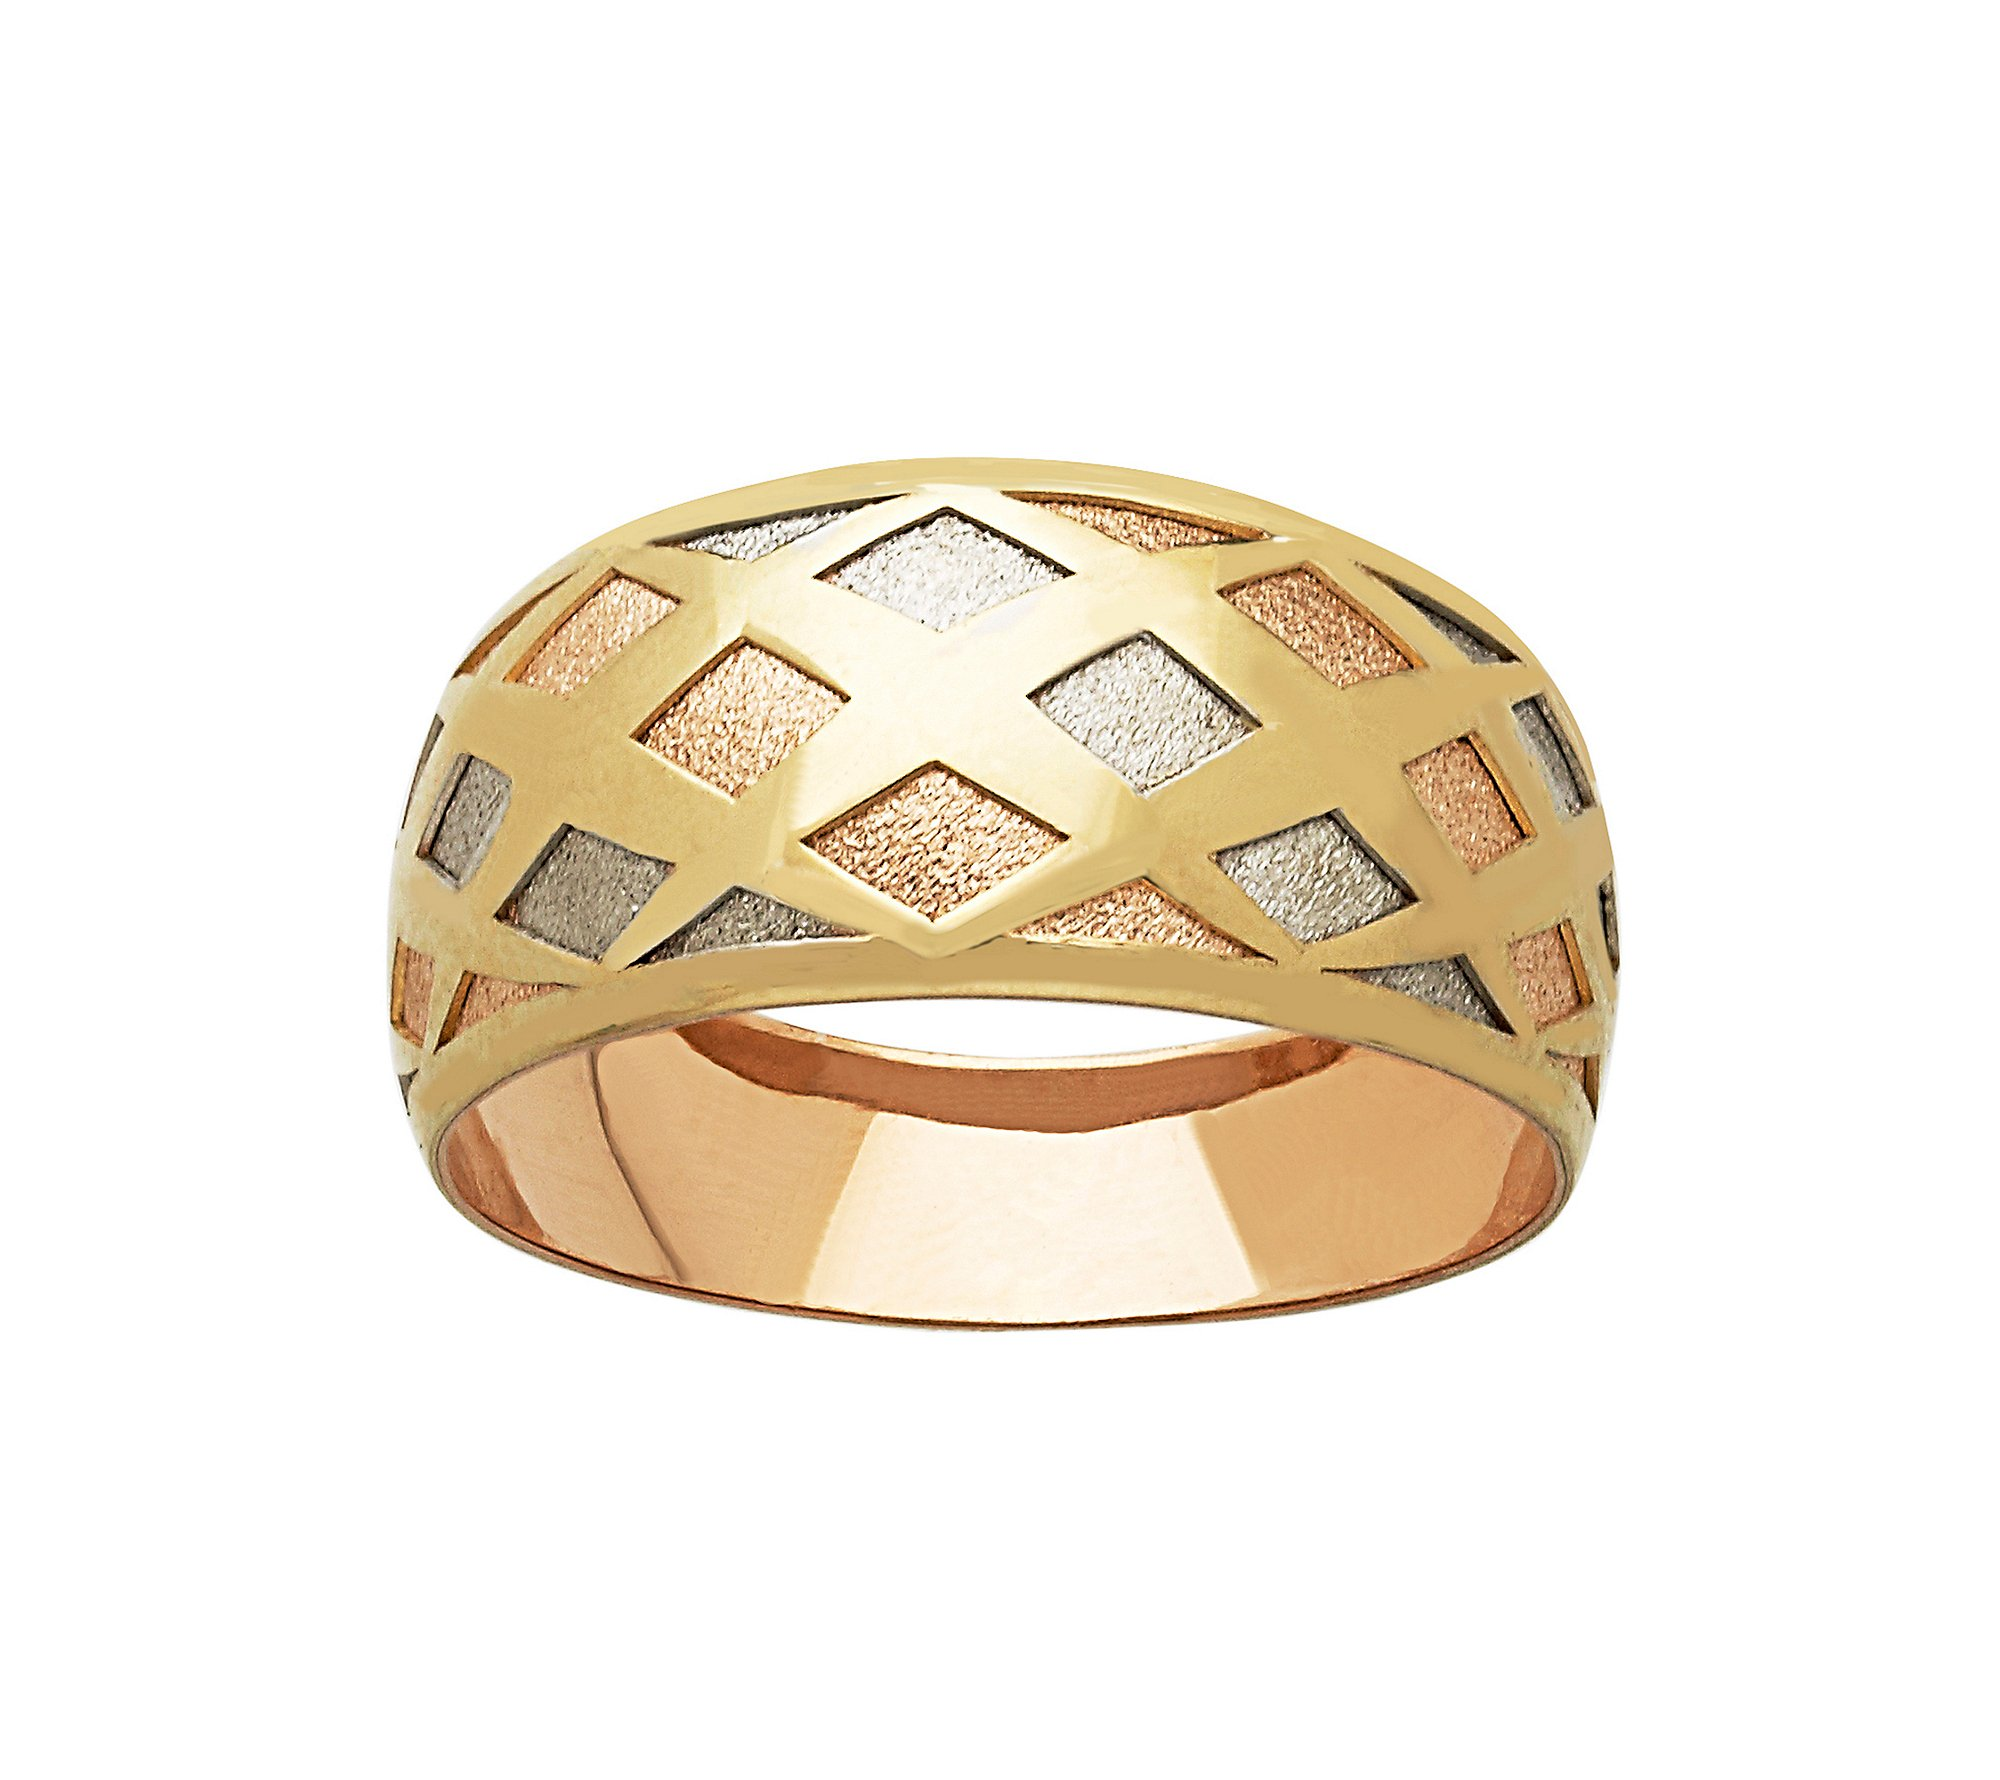 Tri Tone 14K Gold Sparkle Ring With Diamond Shape Stamp by Fine Jewelry (Image #1)